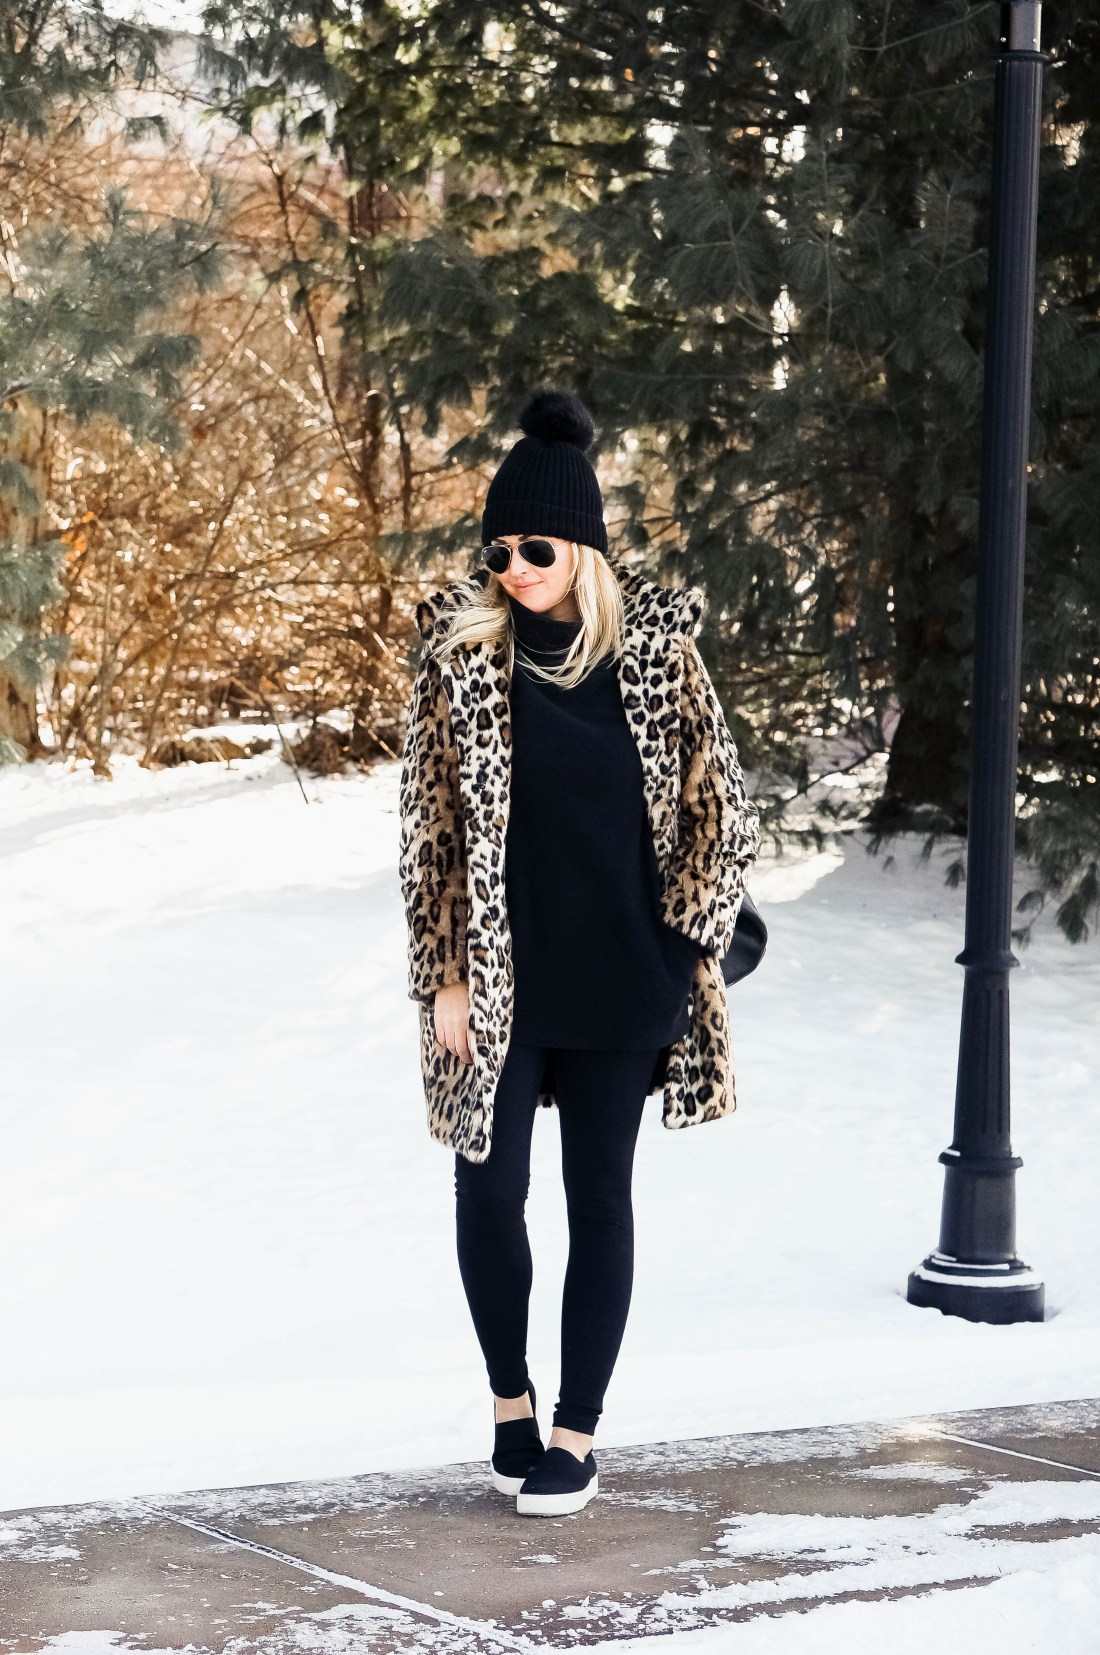 How To Wear A Fur Leopard Coat